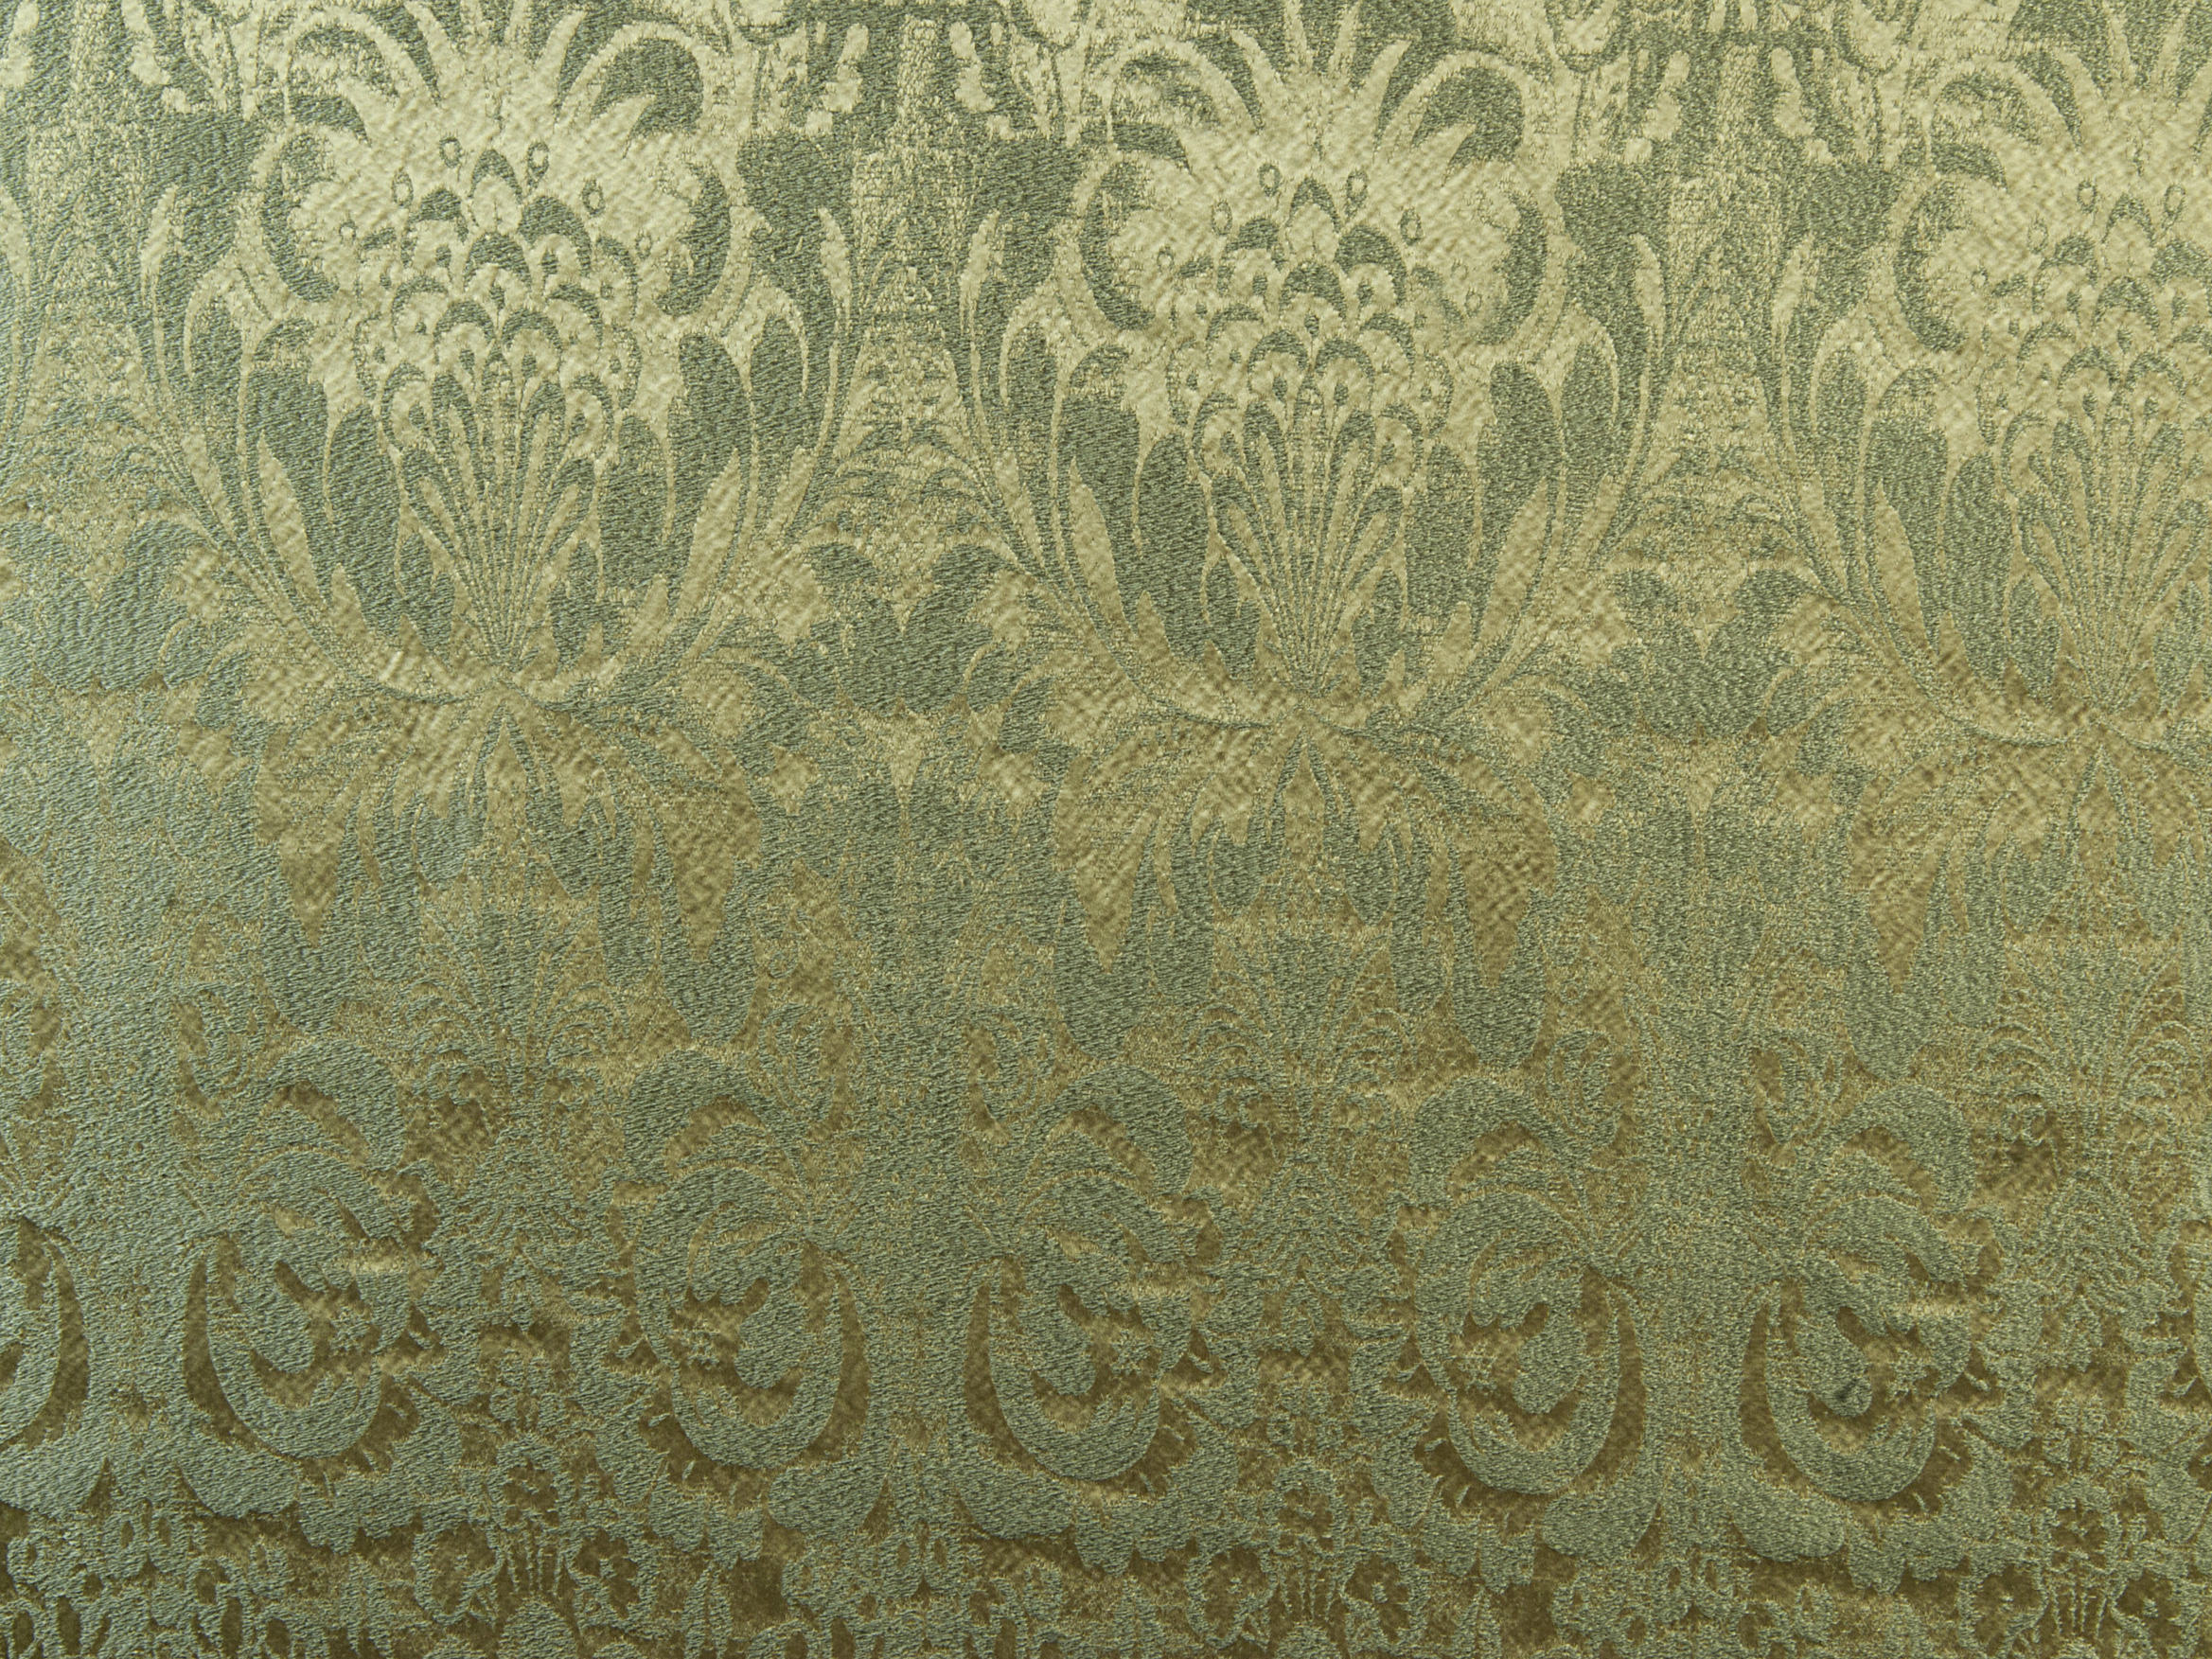 Damask upholstery fabric historian by aldeco interior fabrics for Upholstery fabric